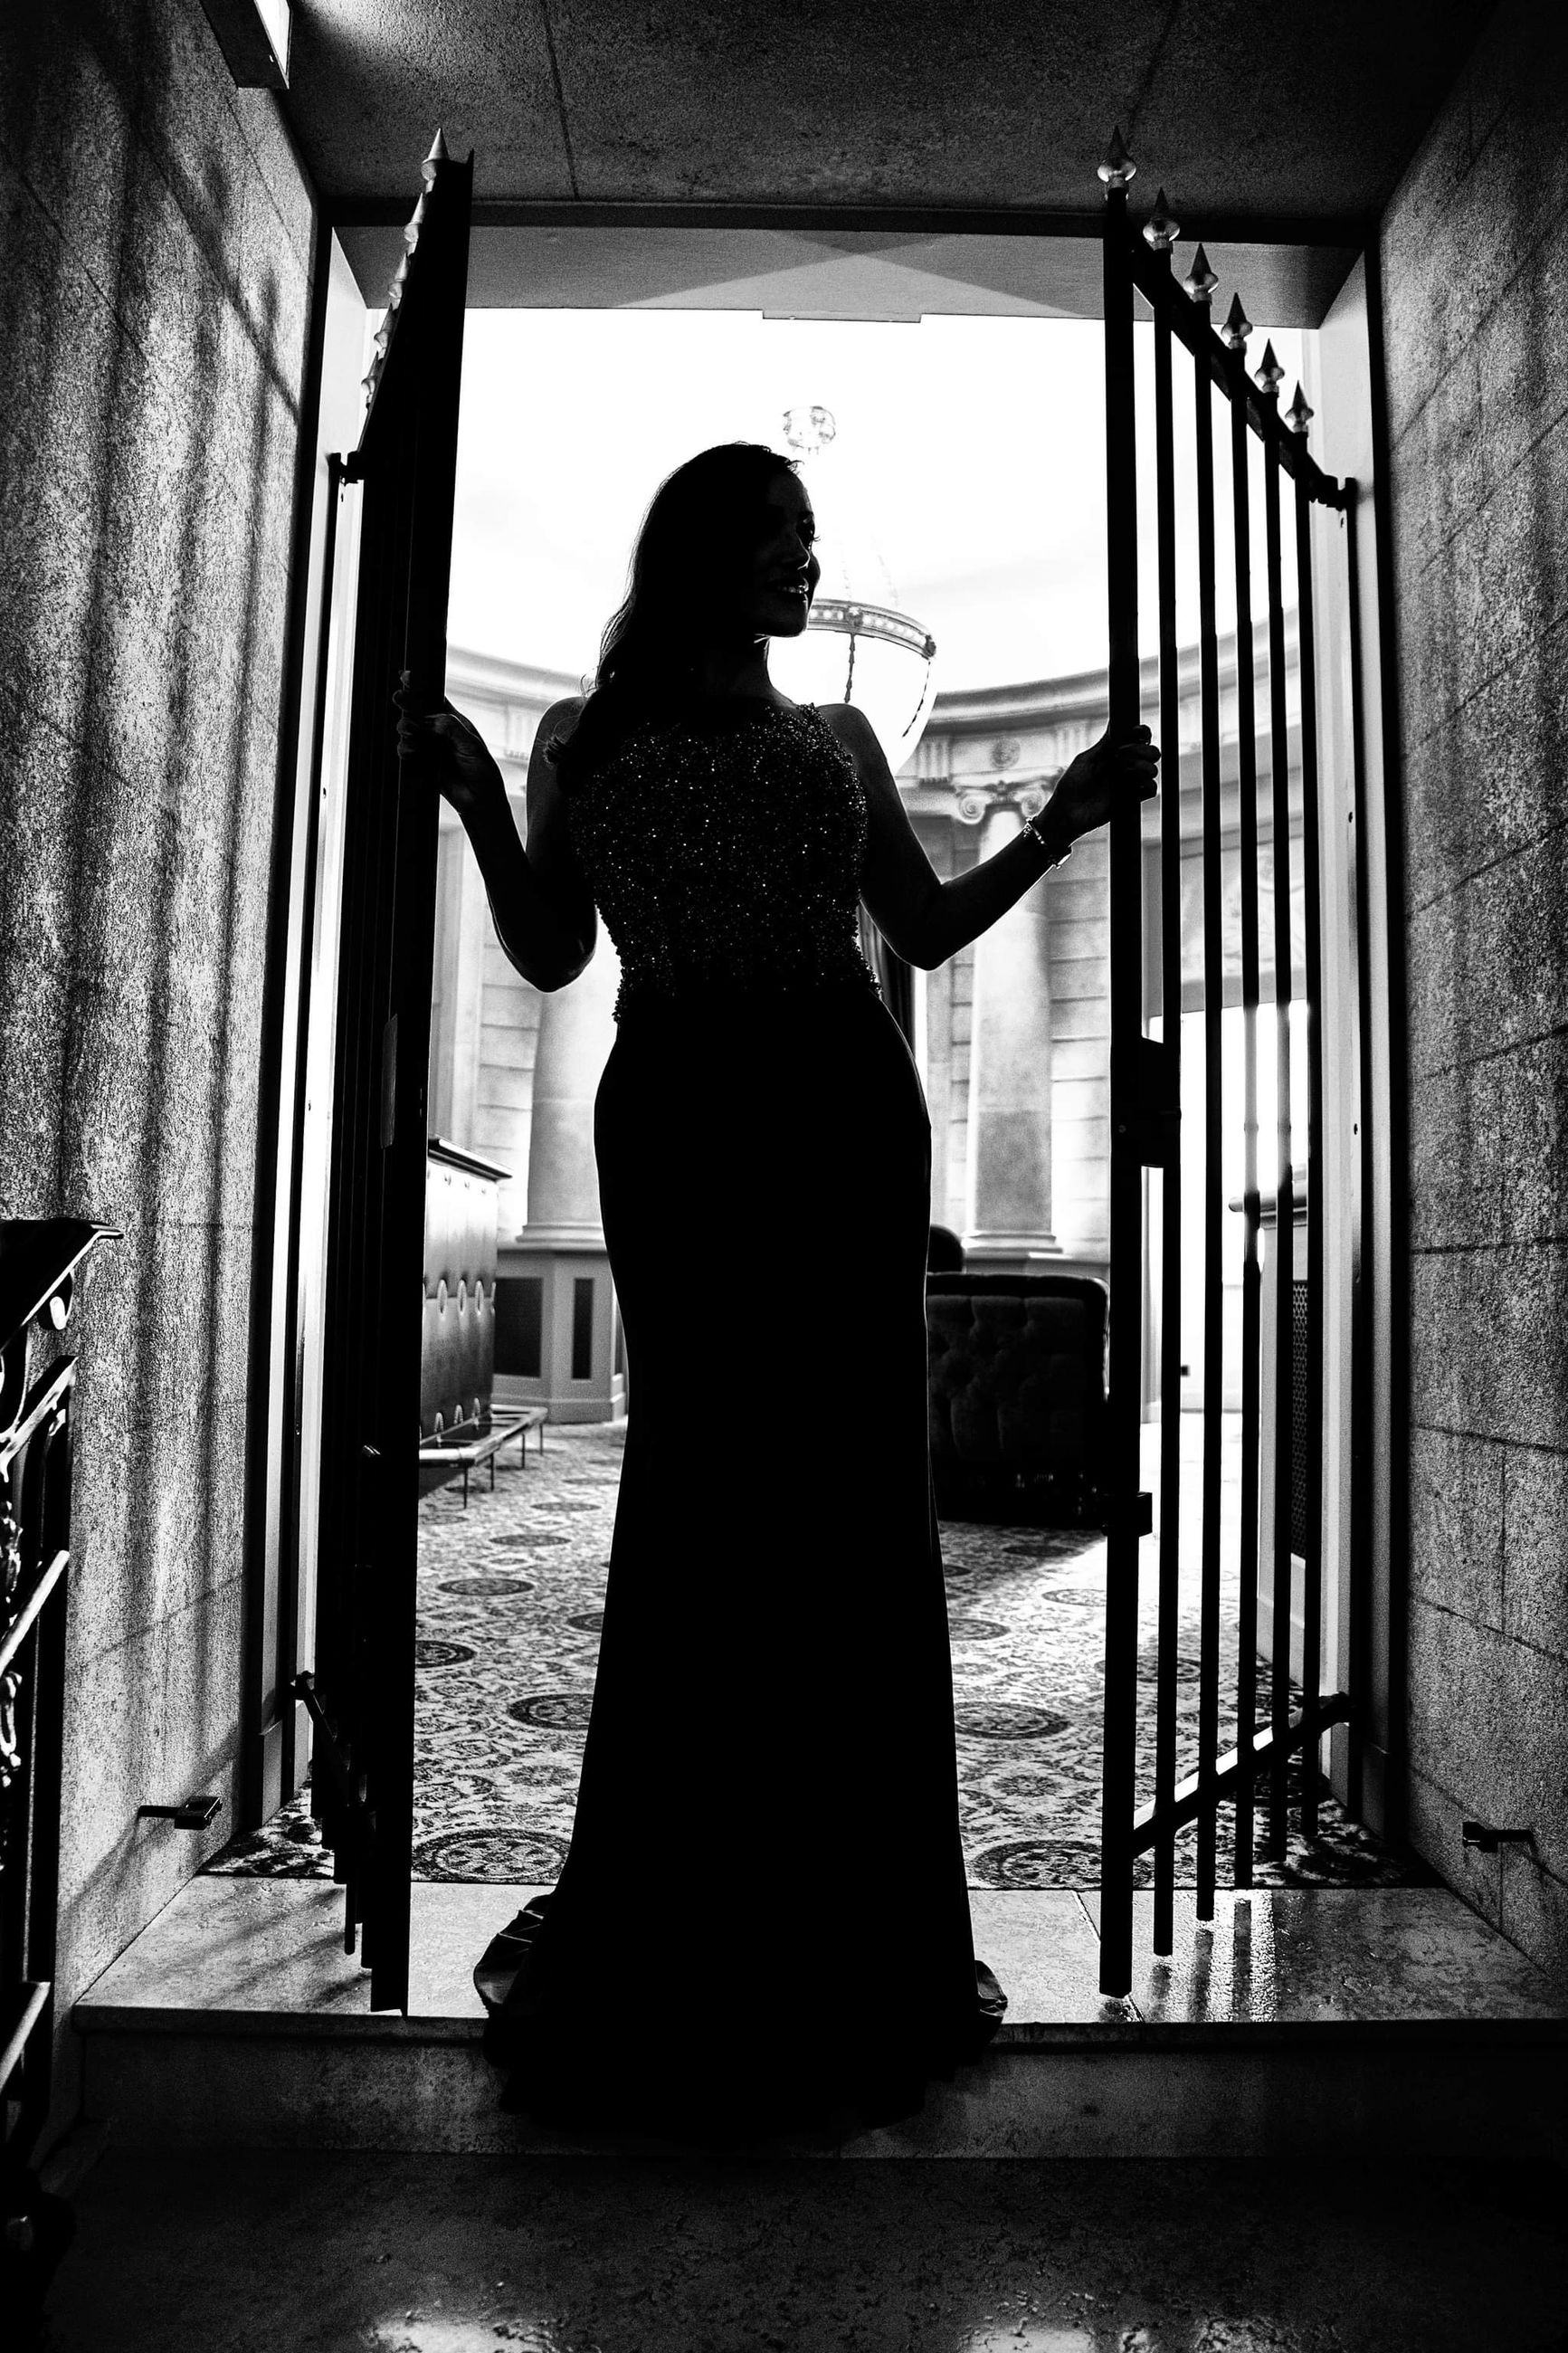 black, black and white, white, one person, monochrome, monochrome photography, adult, women, indoors, bride, standing, full length, architecture, silhouette, lifestyles, darkness, person, wedding dress, female, young adult, dress